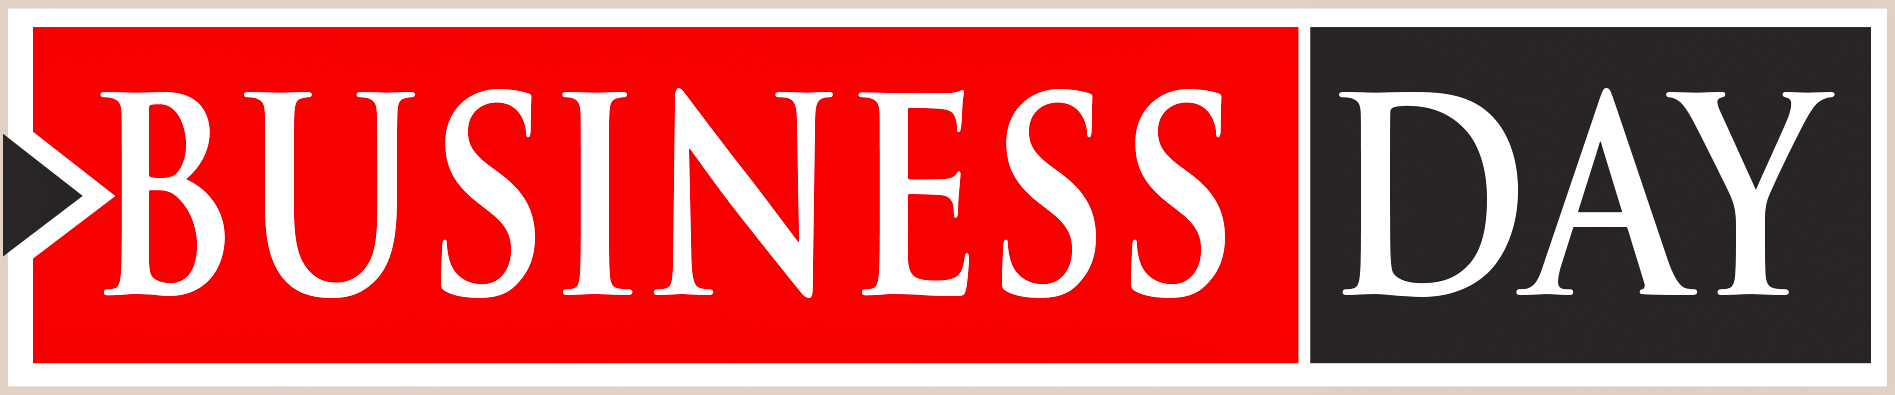 BusinessdayLogo.png